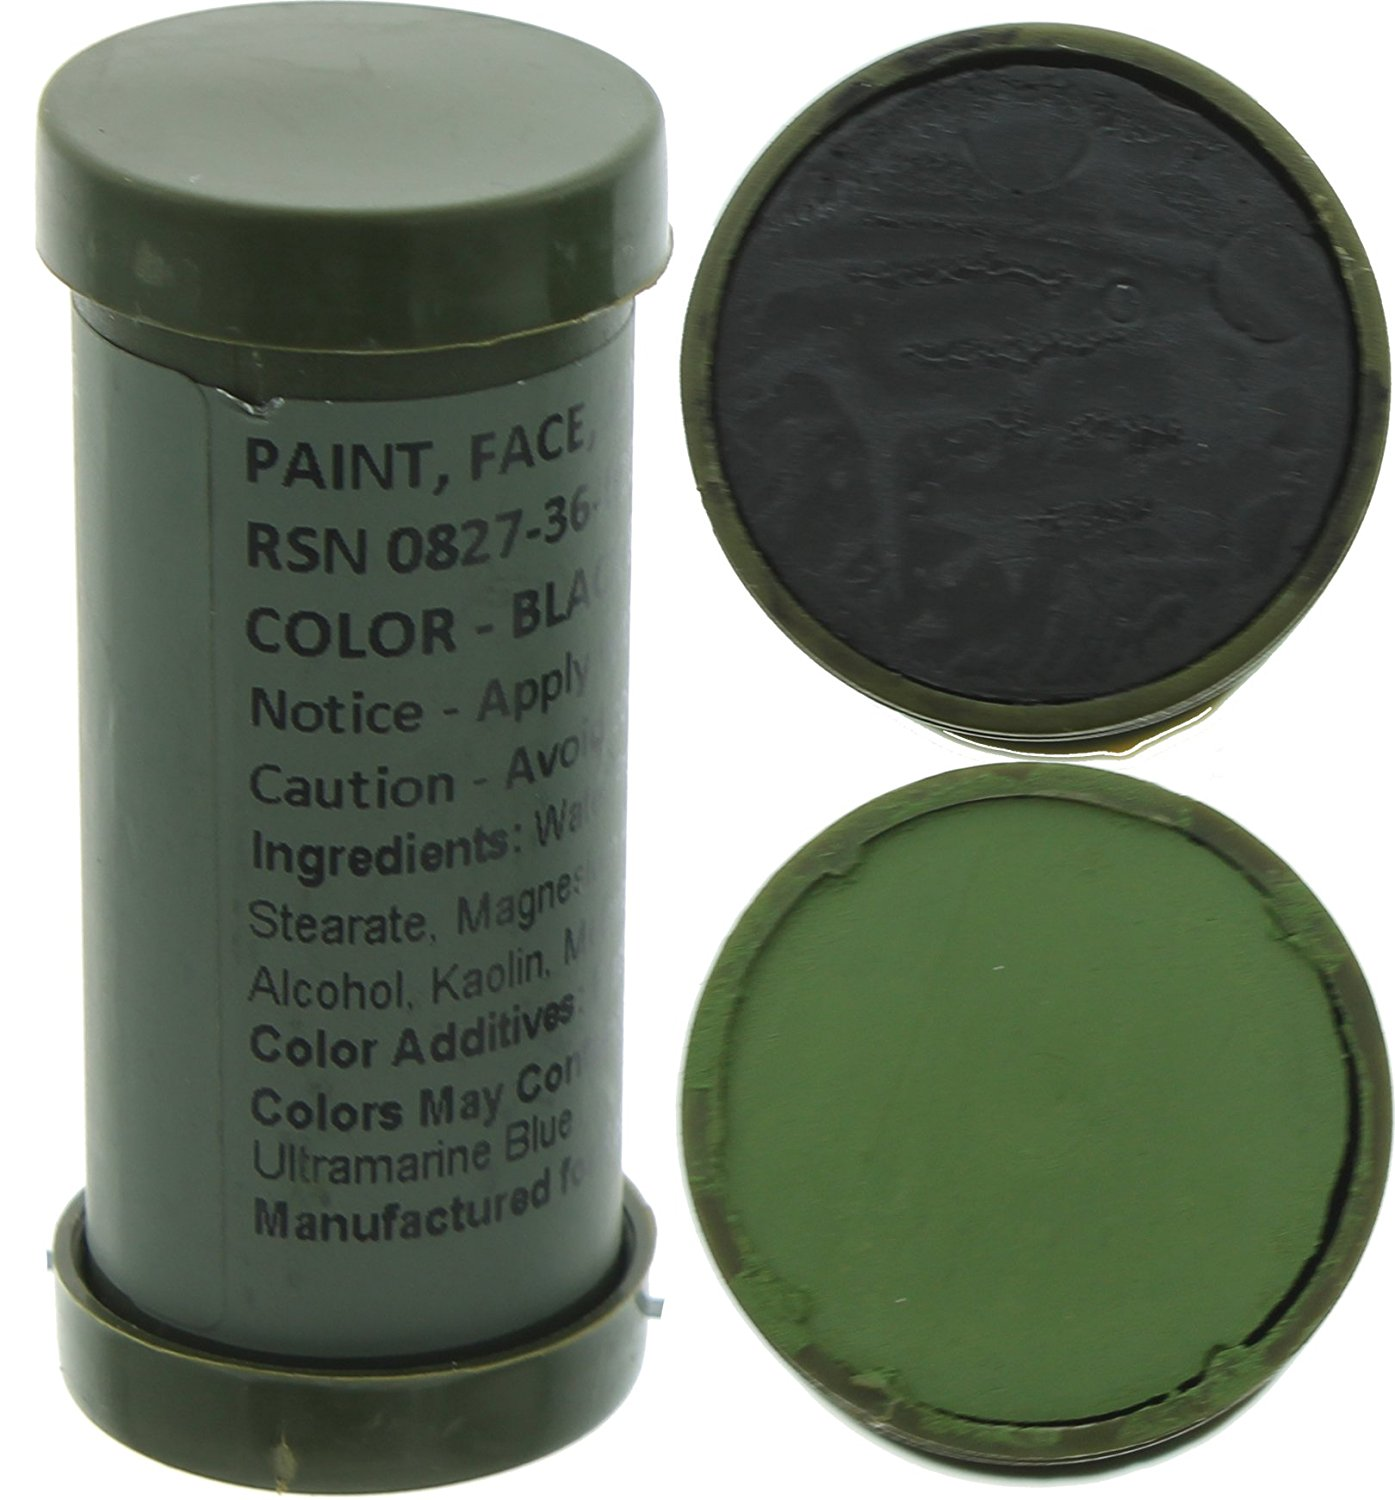 Camo Face Paint, NATO Military Camouflage Outdoor Makeup Jungle Paint Sticks